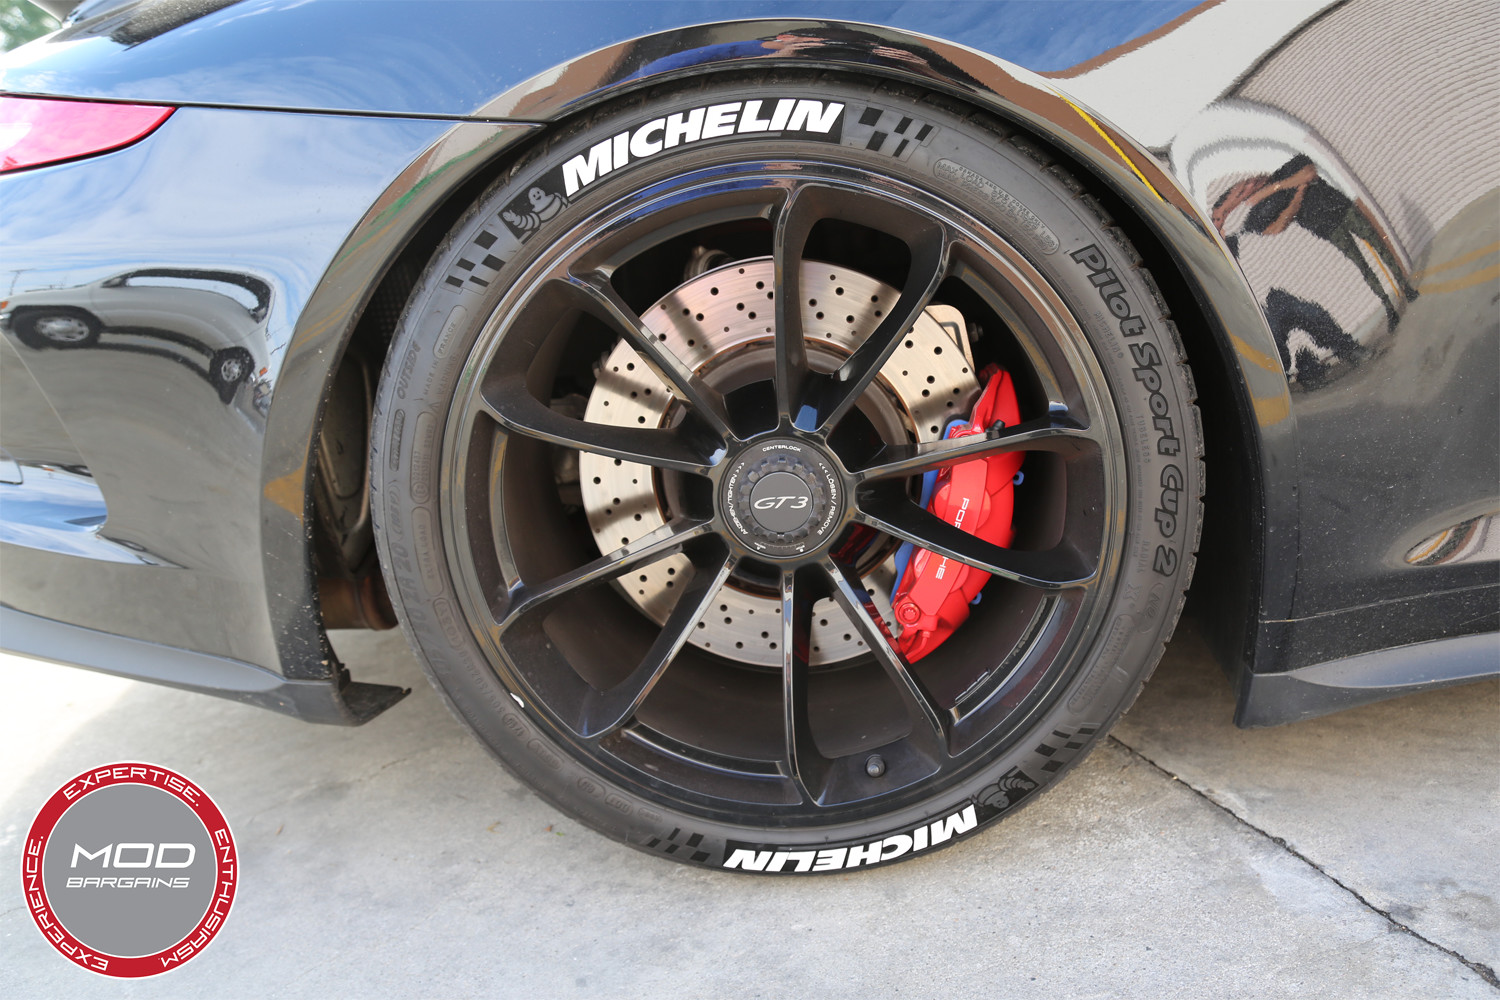 Michelin Tire Stickers installed on Porsche